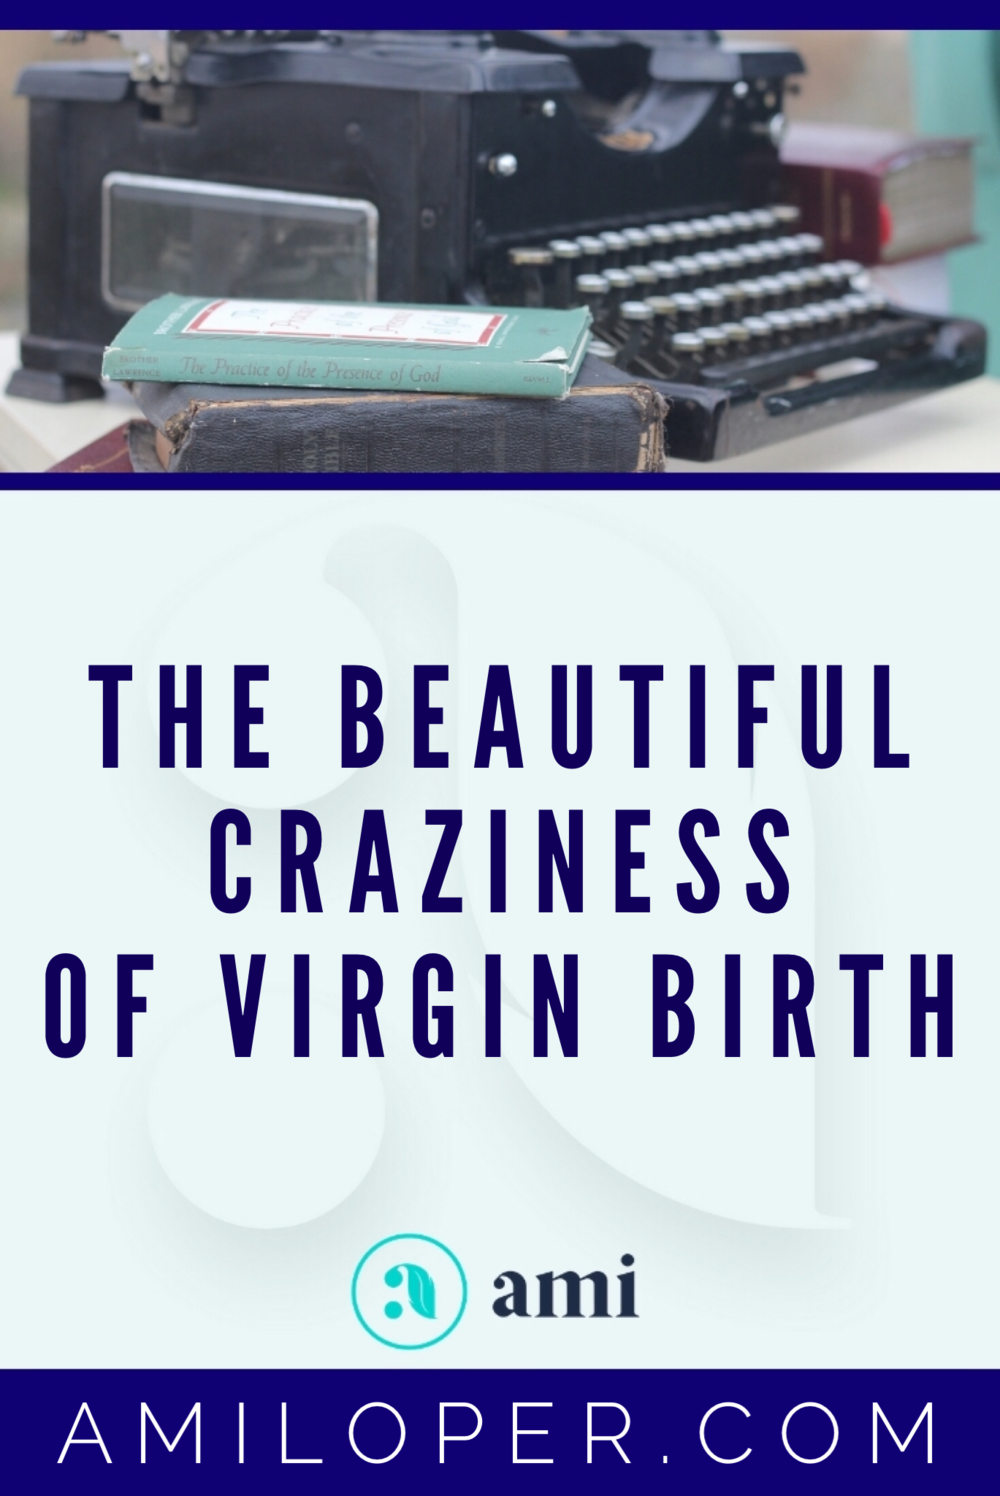 The Virgin Birth is a beautiful story that many either disregard because it sounds impossible or gloss over in confusion. But, as crazy as it sounds, the Virgin Birth is an essential element of our faith? Why? What's so important about it? #Christmas #ChristianBlog